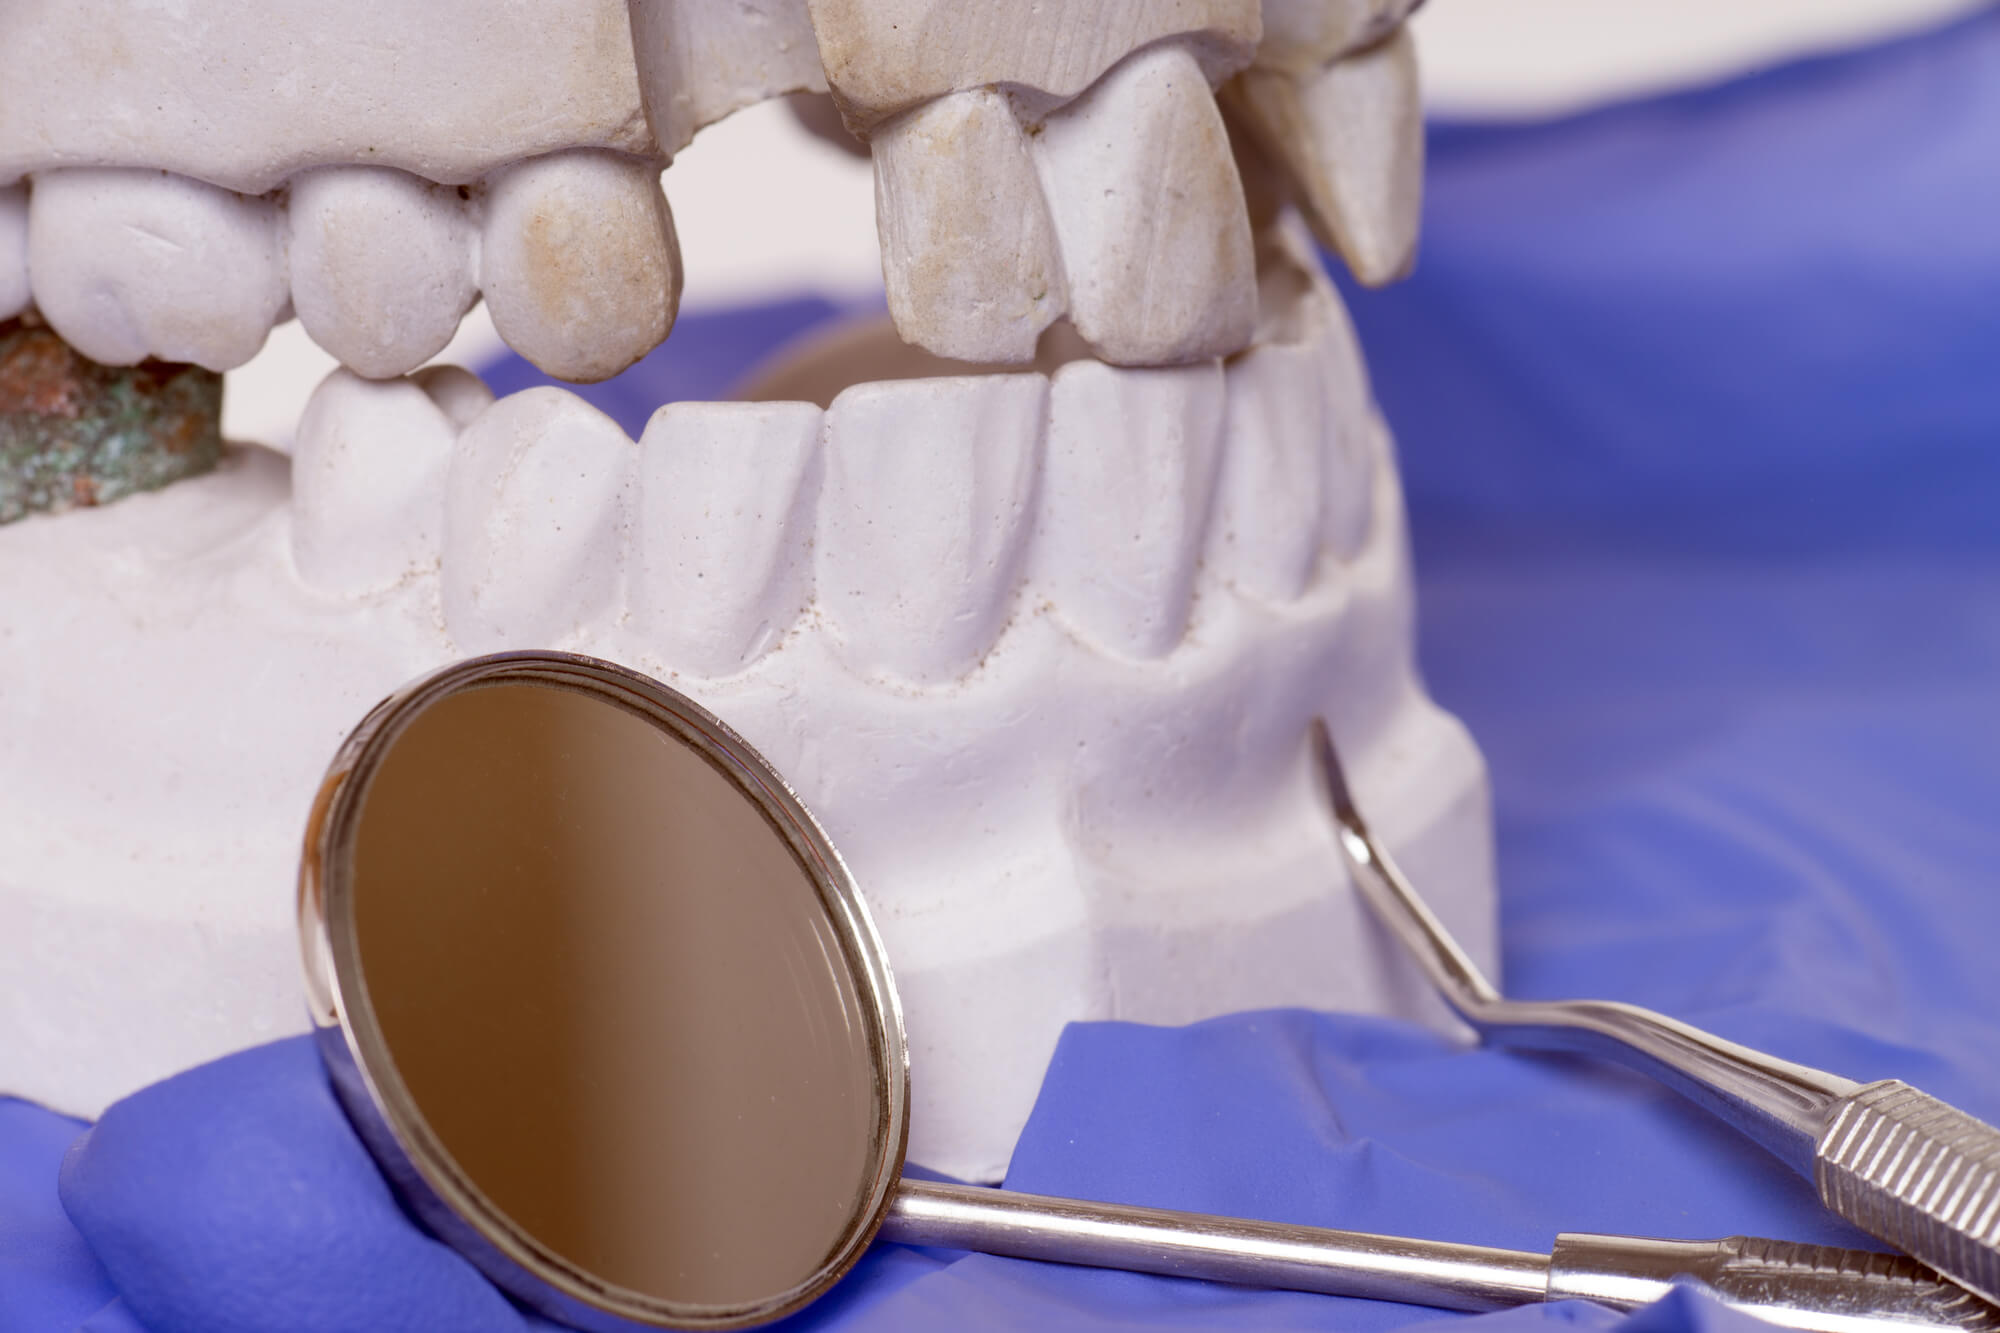 missing teeth plaster for Teeth in a day Plantation